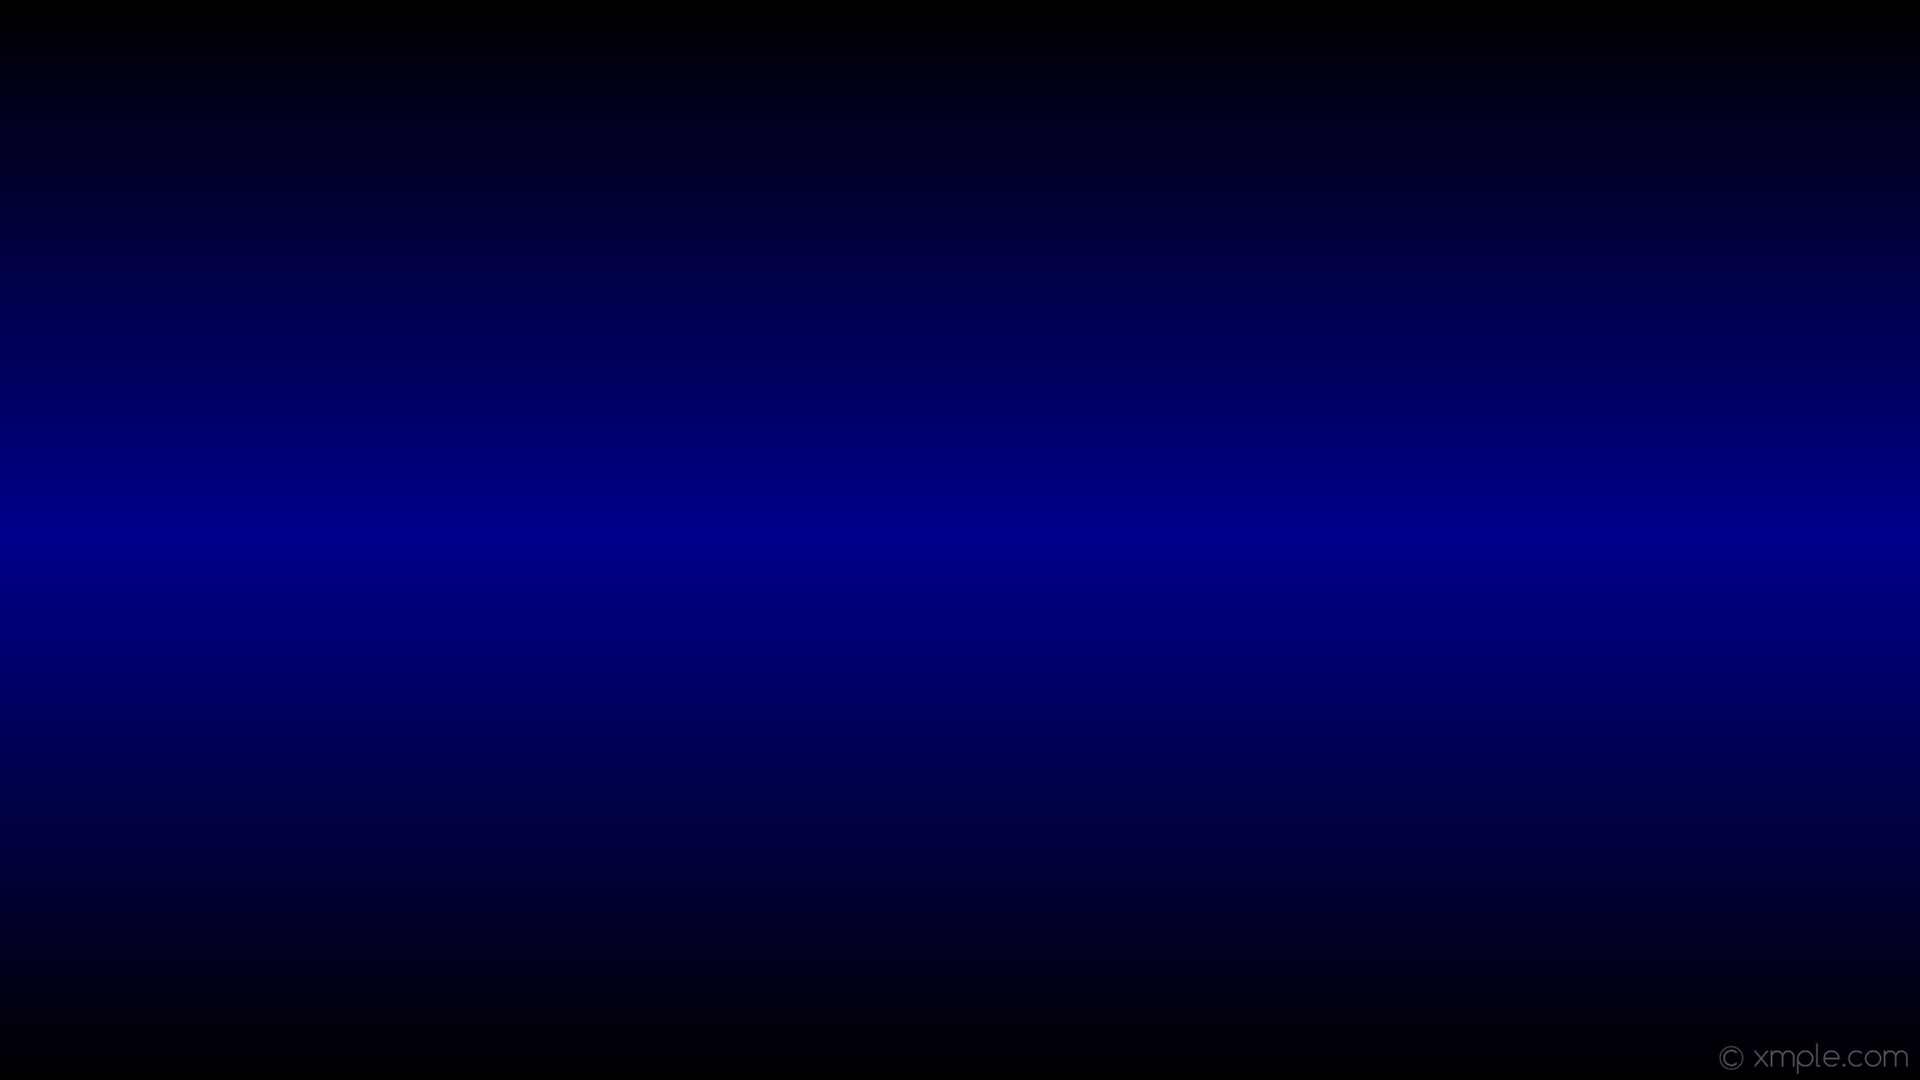 2160x1920 Android Smart Phone Wallpaper Download 1920x1080 Black And Blue